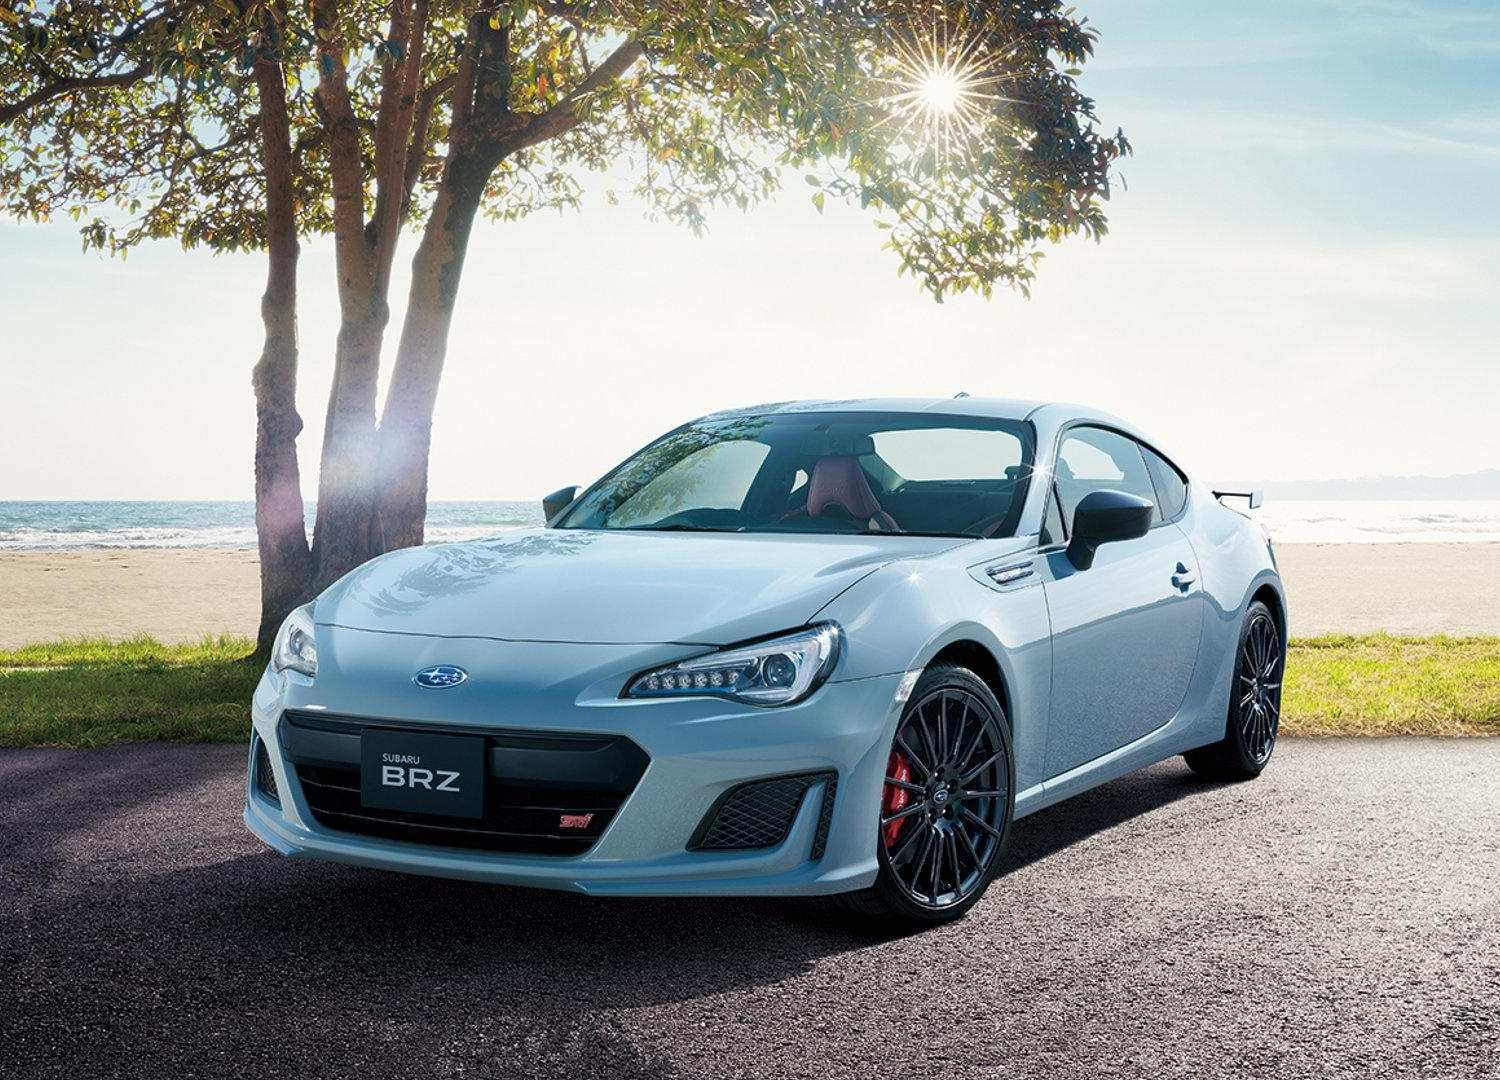 32 New 2020 Subaru BRZ Engine with 2020 Subaru BRZ